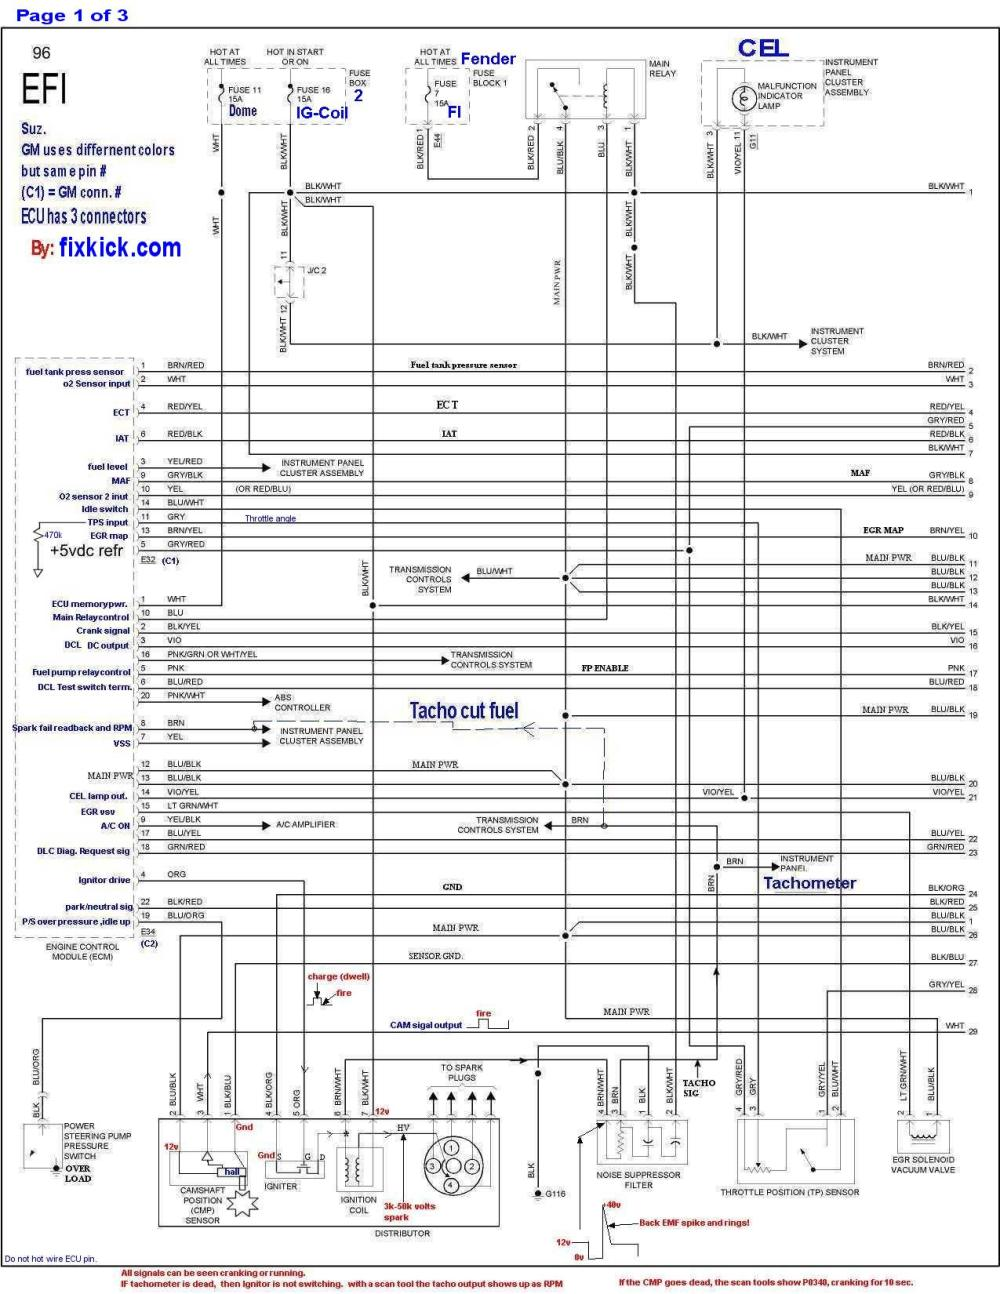 medium resolution of 3 page with annotations the dlc cab wires up like this the ecu conn look like this 96 only